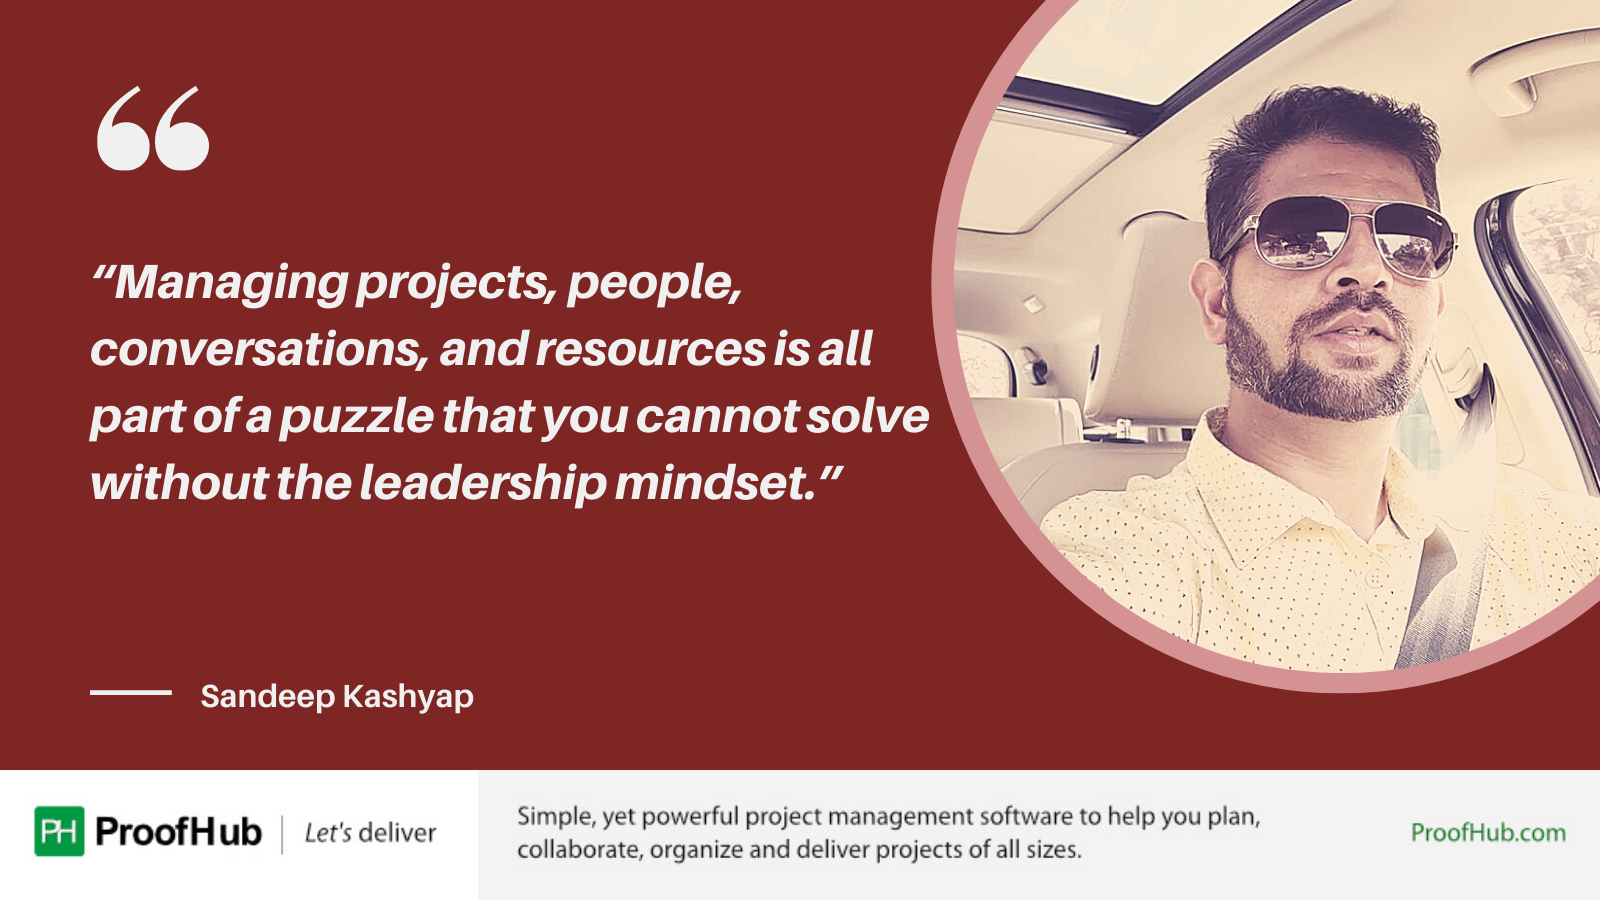 Managing projects, people, conversations, and resources is all part of a puzzle that you cannot solve without the leadership mindset Quote by Sandeep Kashyap